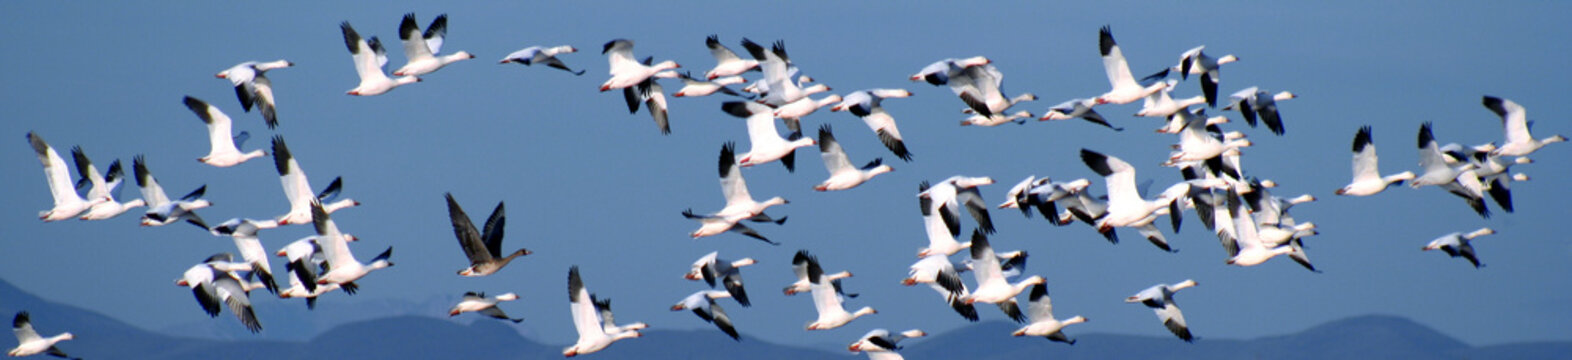 A Flock of Snow Geese Over the Mountains